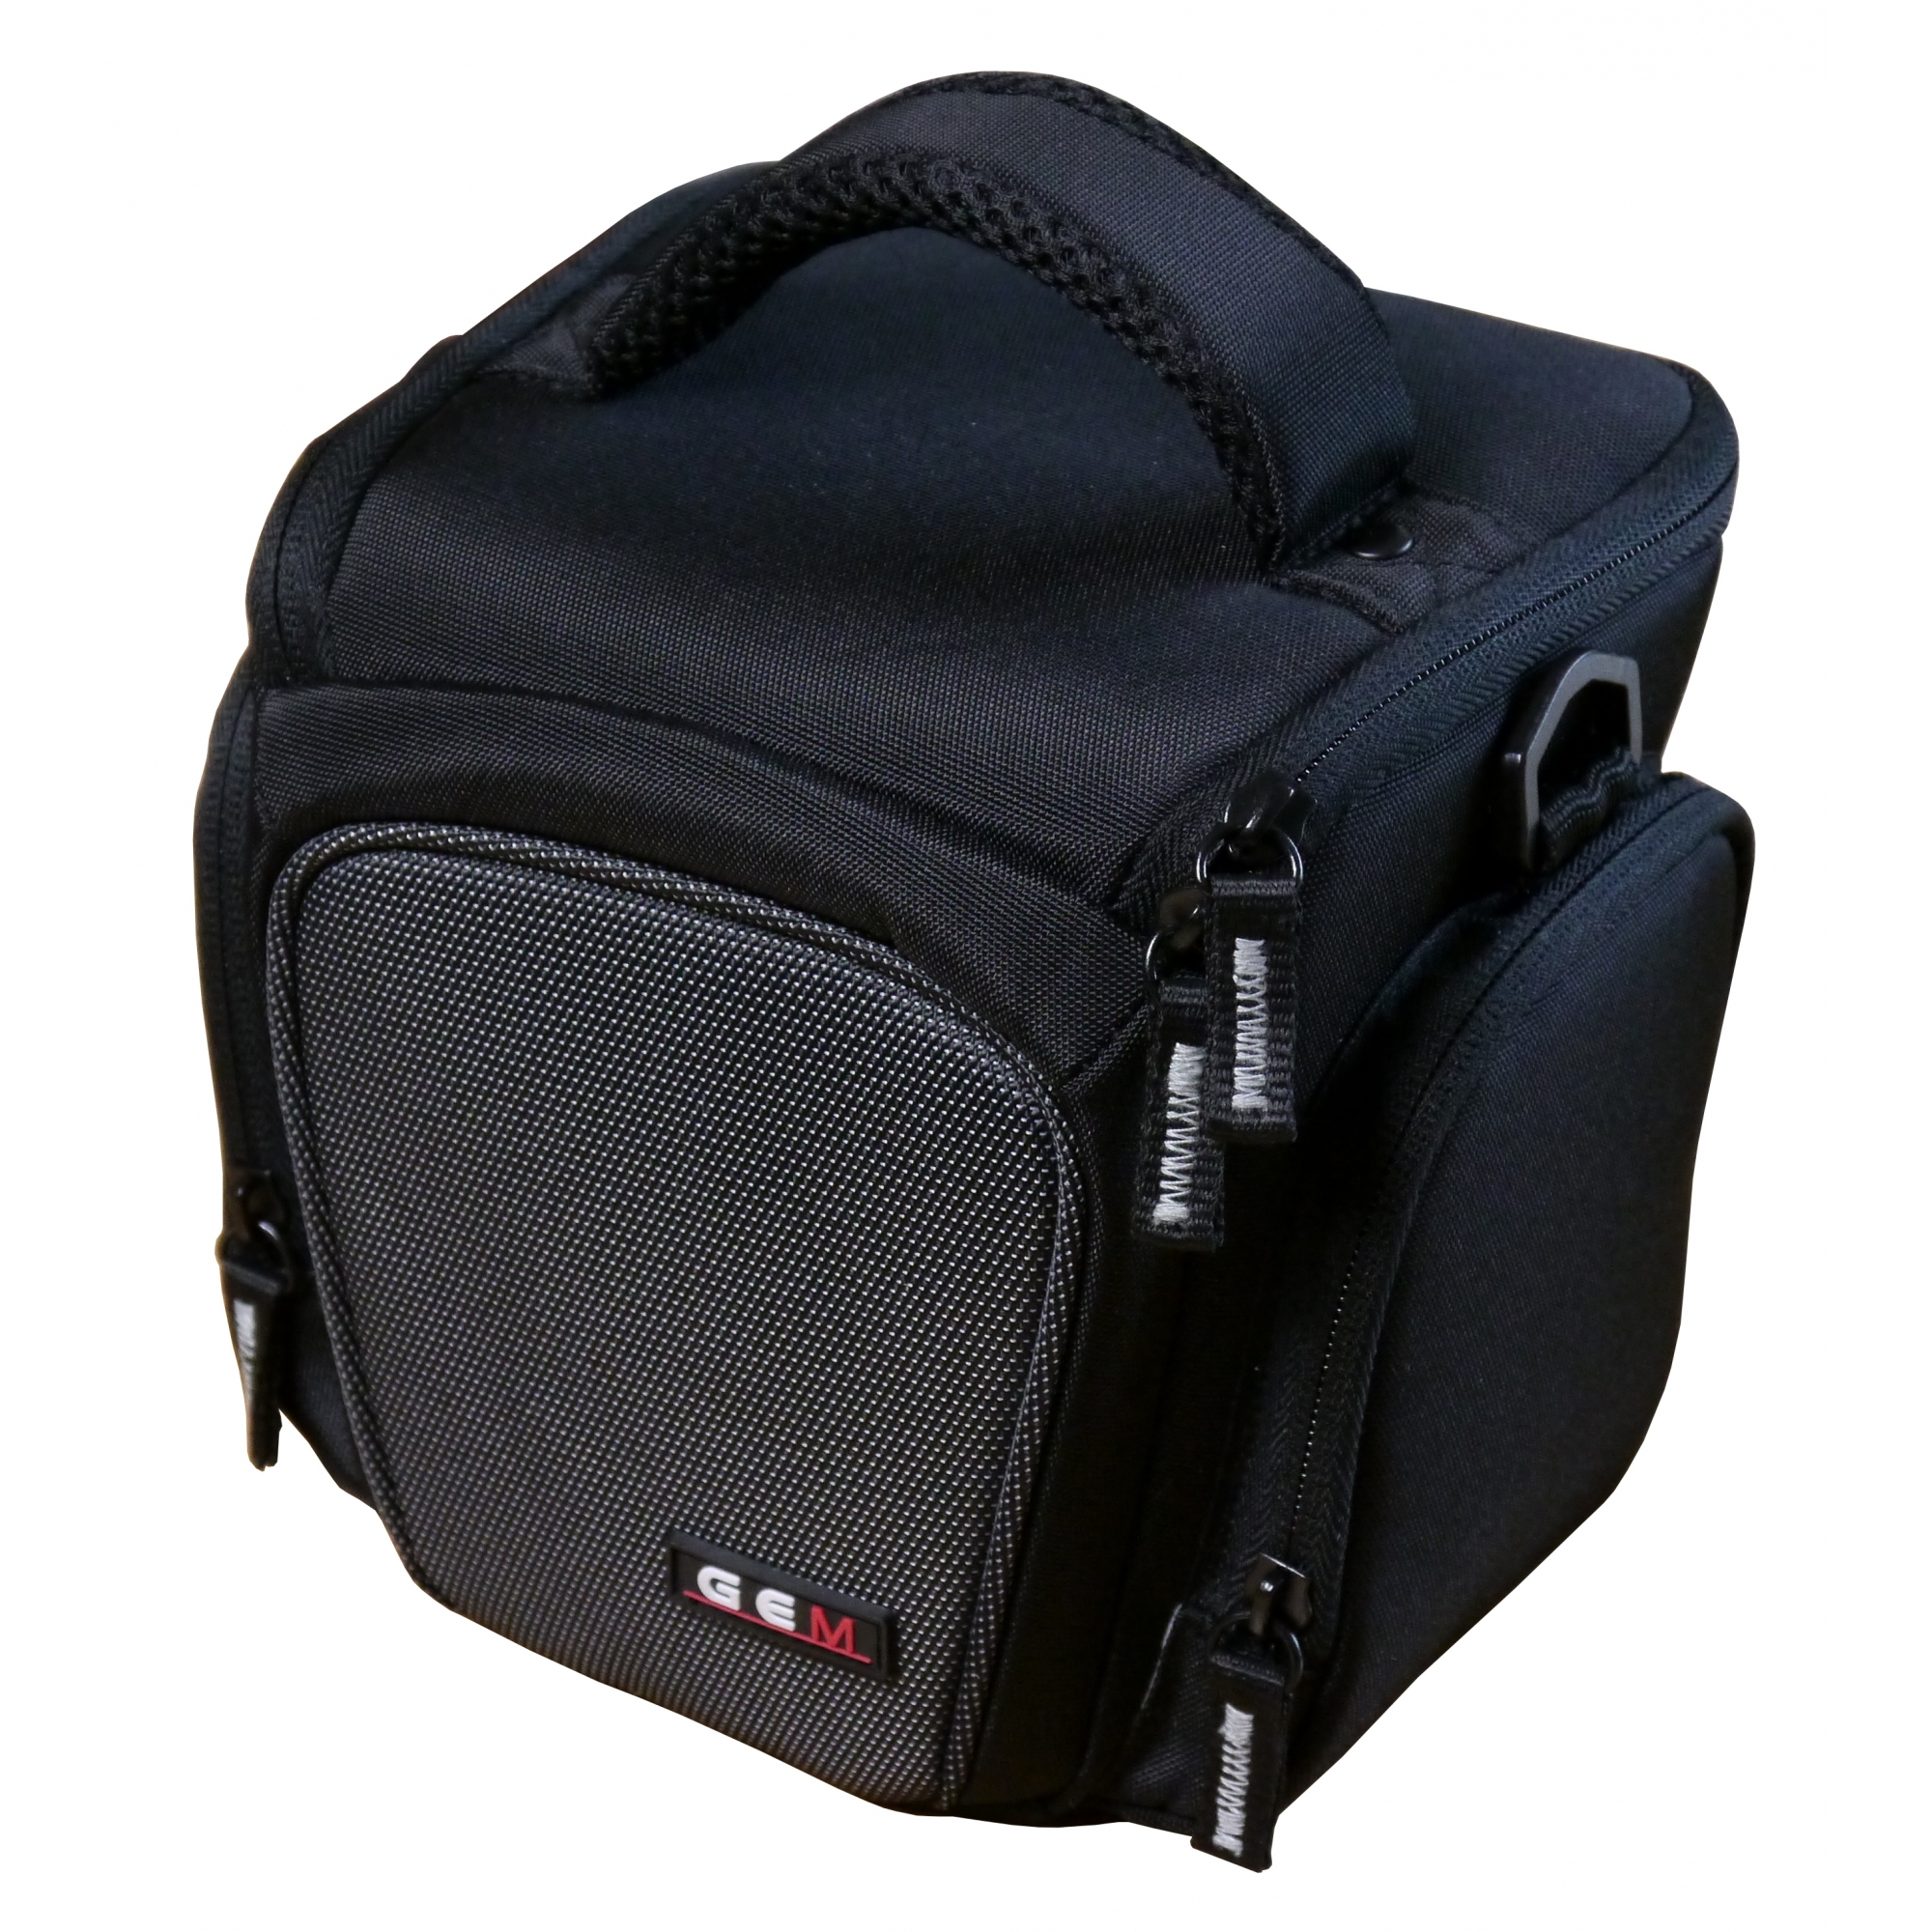 GEM Bobcat 10 Camera Case for Panasonic Lumix DMC-FZ38